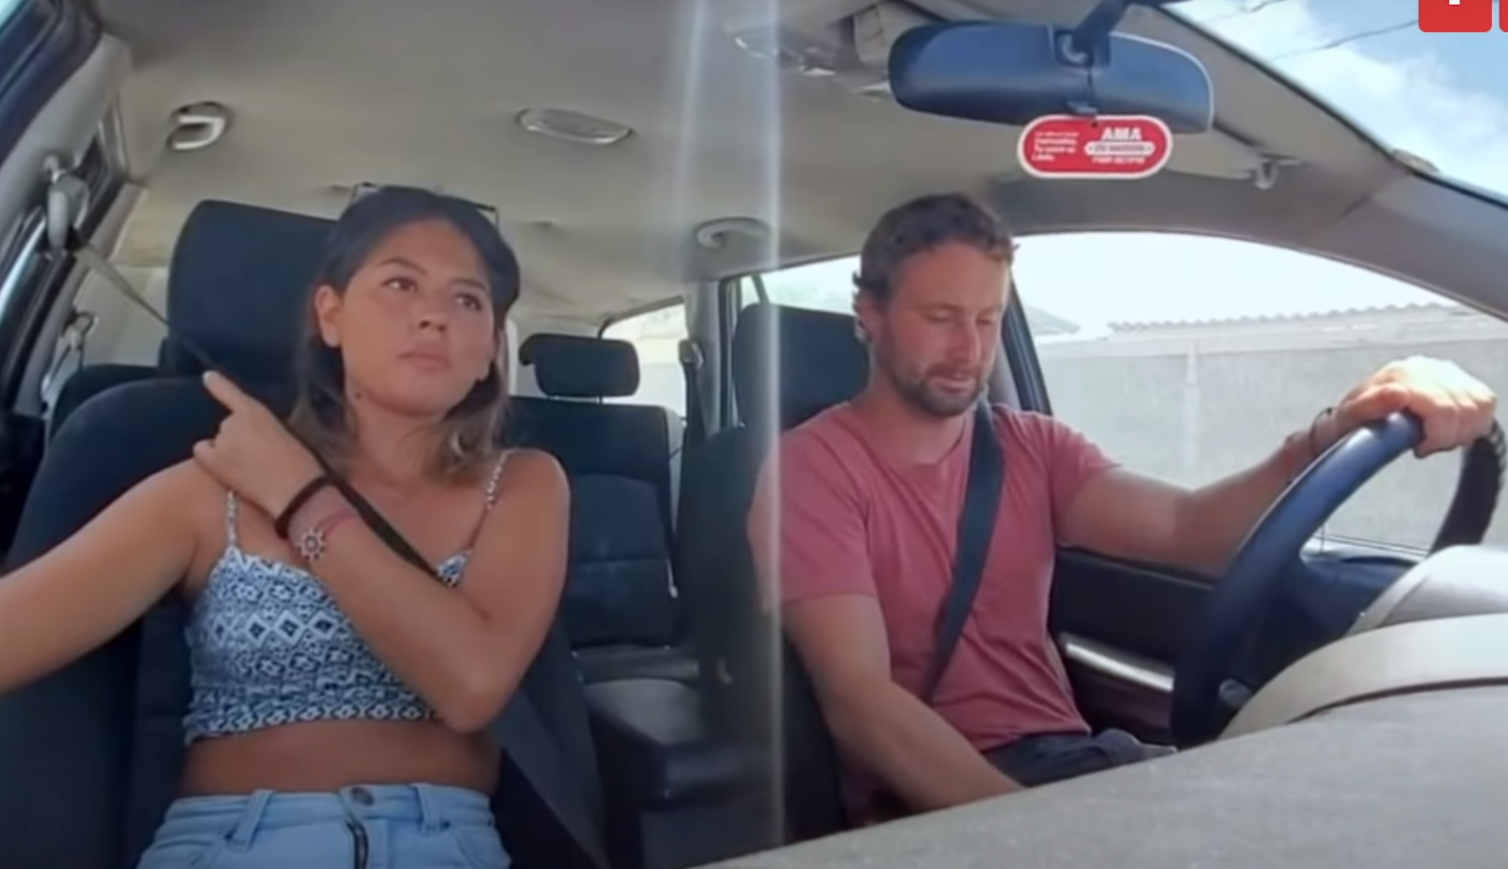 90 Day Fiancé couple Corey and Evelin in a car, with Corey Rathgeber at the wheel